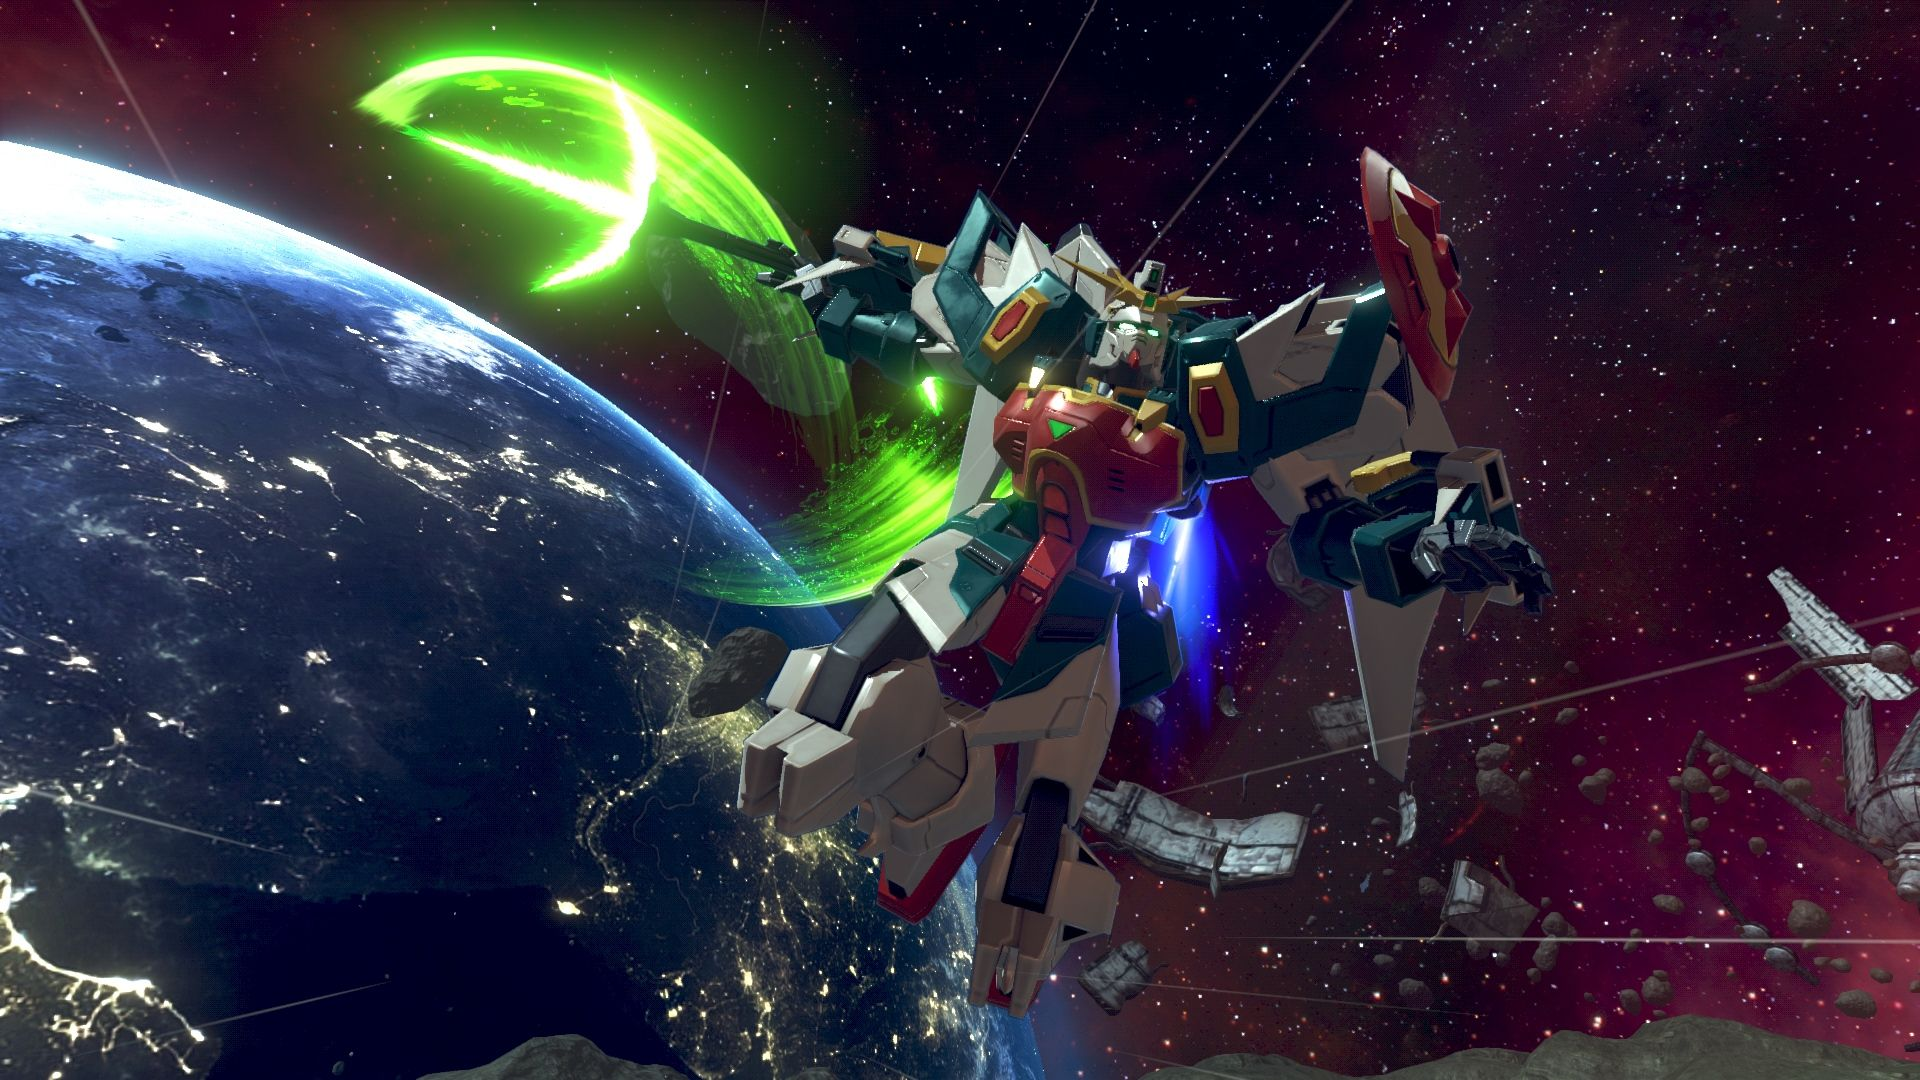 Nice Gundam Versus PlayStation 4 (PS4) Game 1920x1080